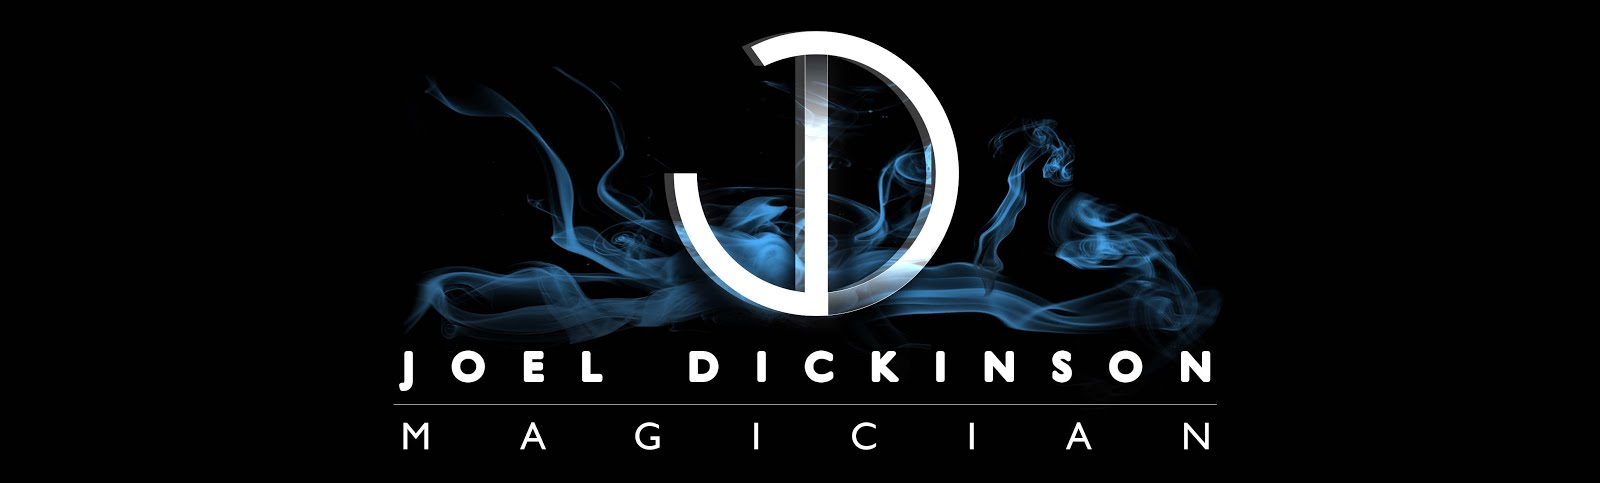 Joel Dickinson: wedding magician cumbria and lancashire